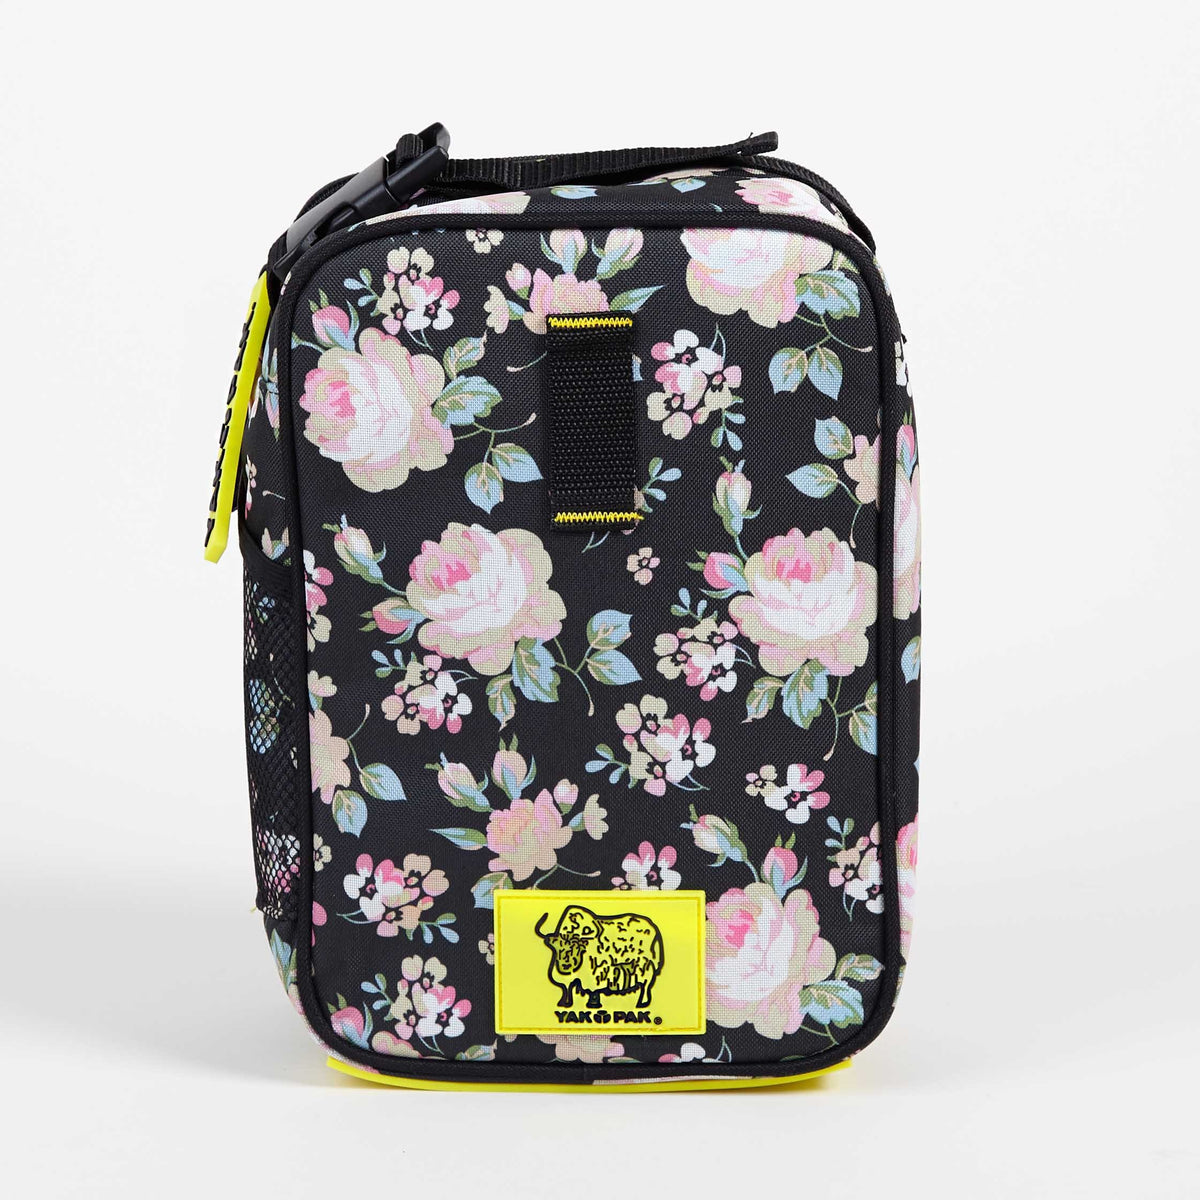 Yak Pak Pink Floral Lunch Bag